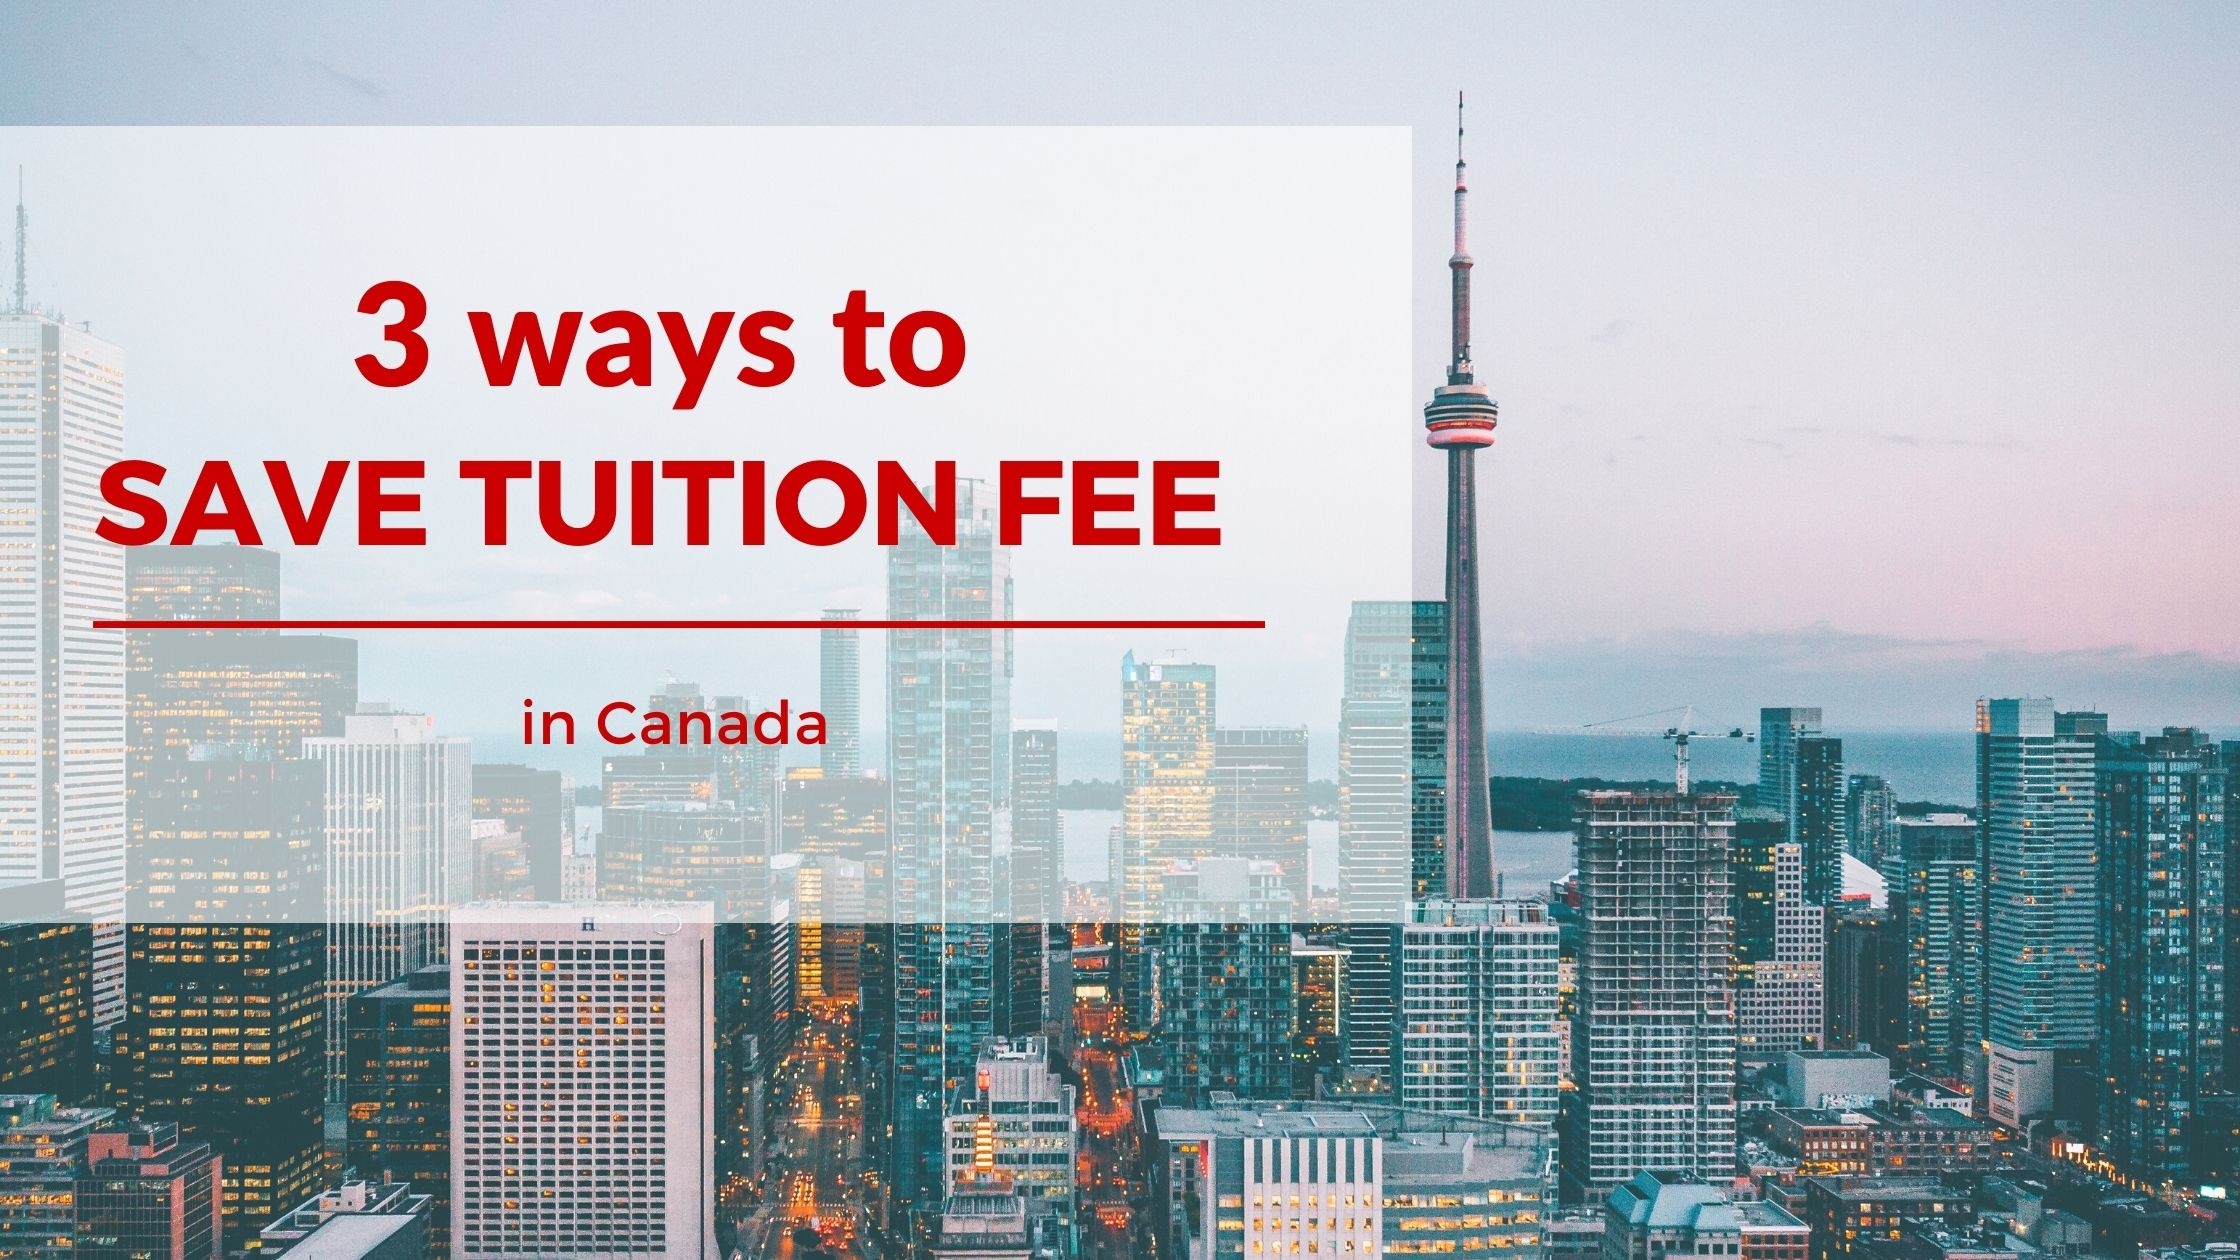 3 Ways to Save Tuition Fee in Canada: International student